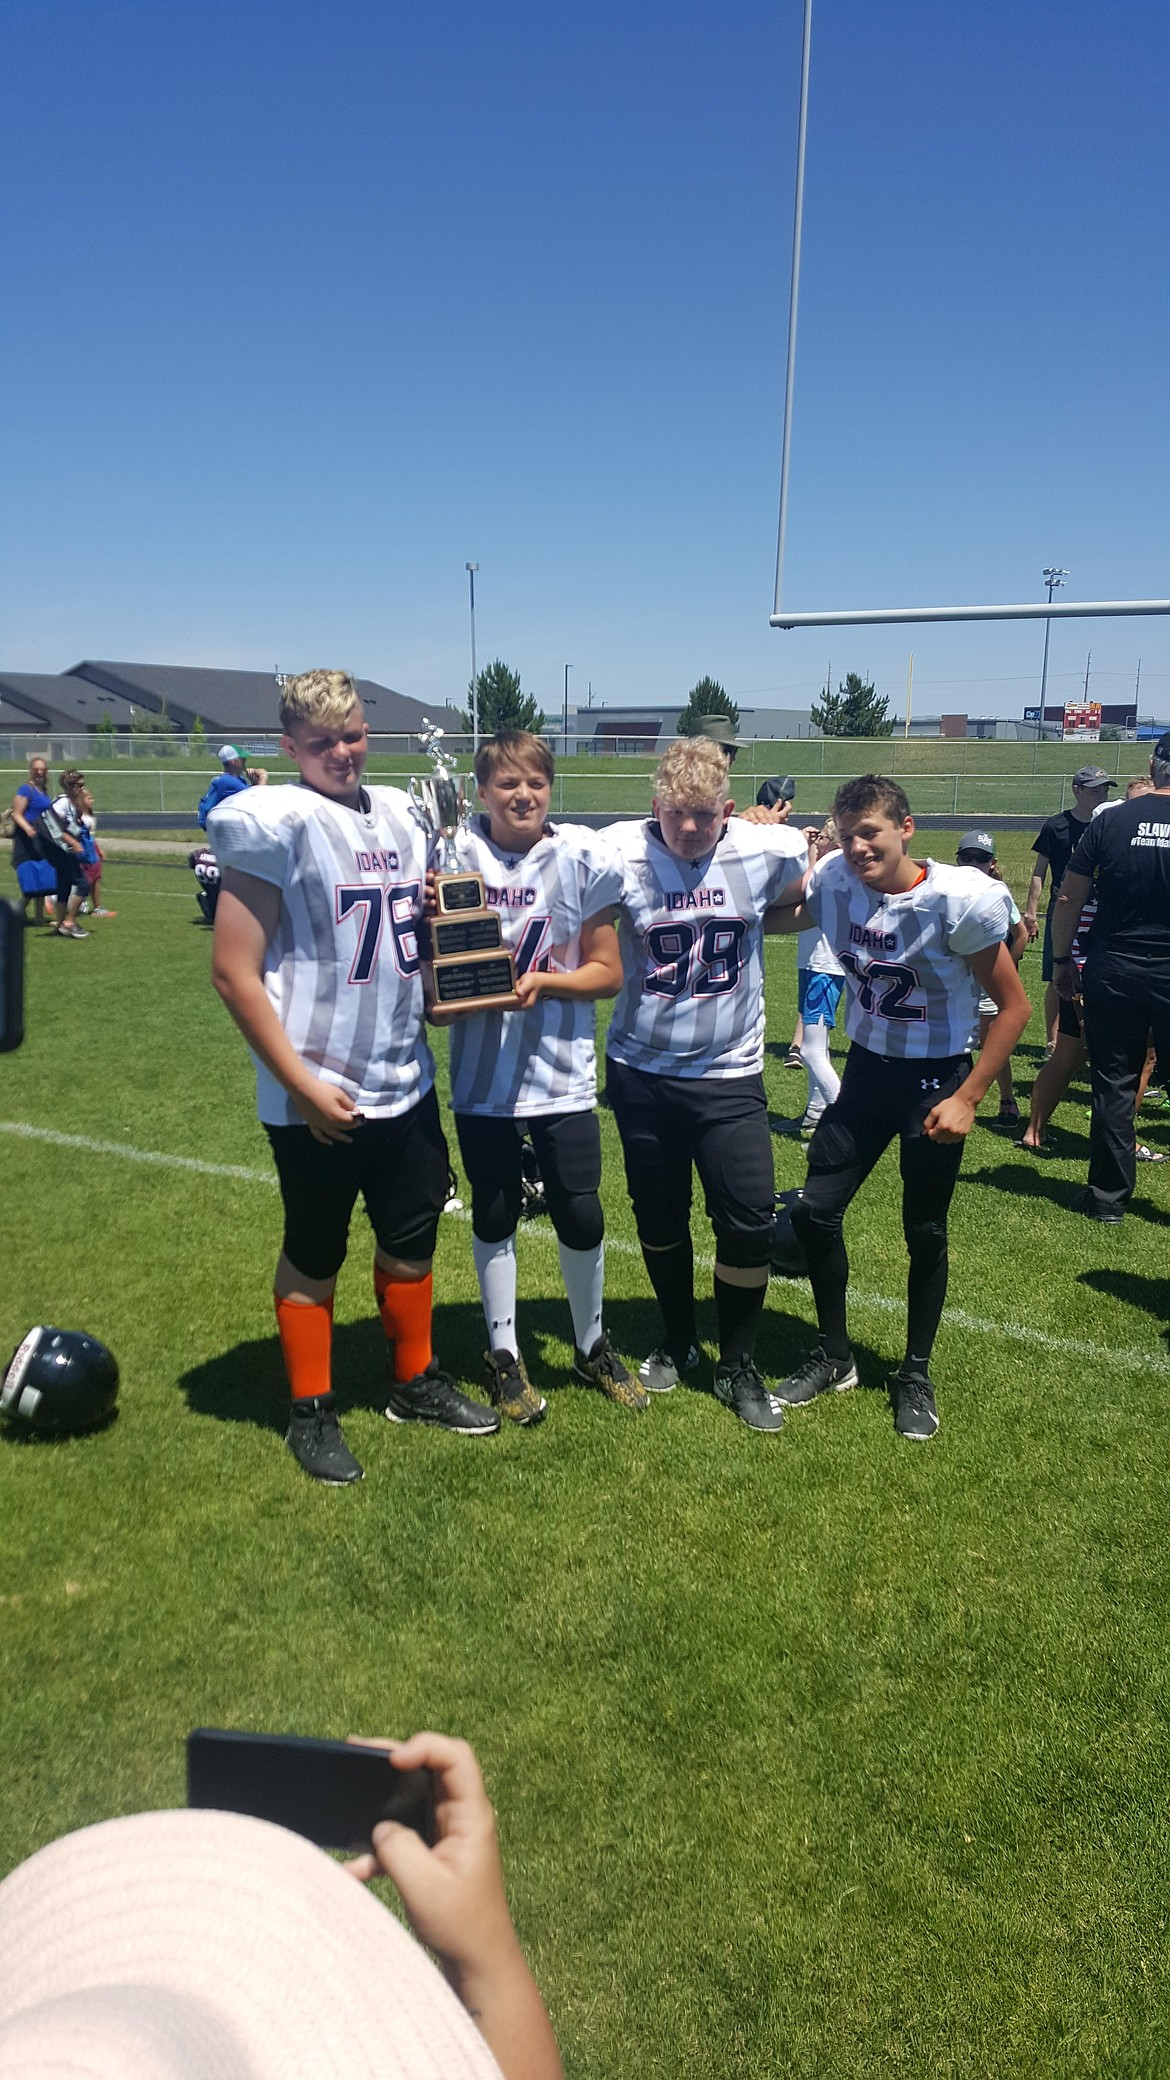 Courtesy photo A handful of Post Falls players played for Team Idaho in the seventh-grade all-state all-star football game last Saturday at the College of Southern Idaho in Twin Falls. Team Idaho (players from other than the Boise area) defeated Team Treasure Valley (Boise-area players) 25-12 in the championship game. Pictured from left are Xander Scholes, Alex Dean, Skyler Hanse and Brandon Felix. Not pictured is Josh Hasty. All-star games were also held in the sixth- and eighth-grade divisions.